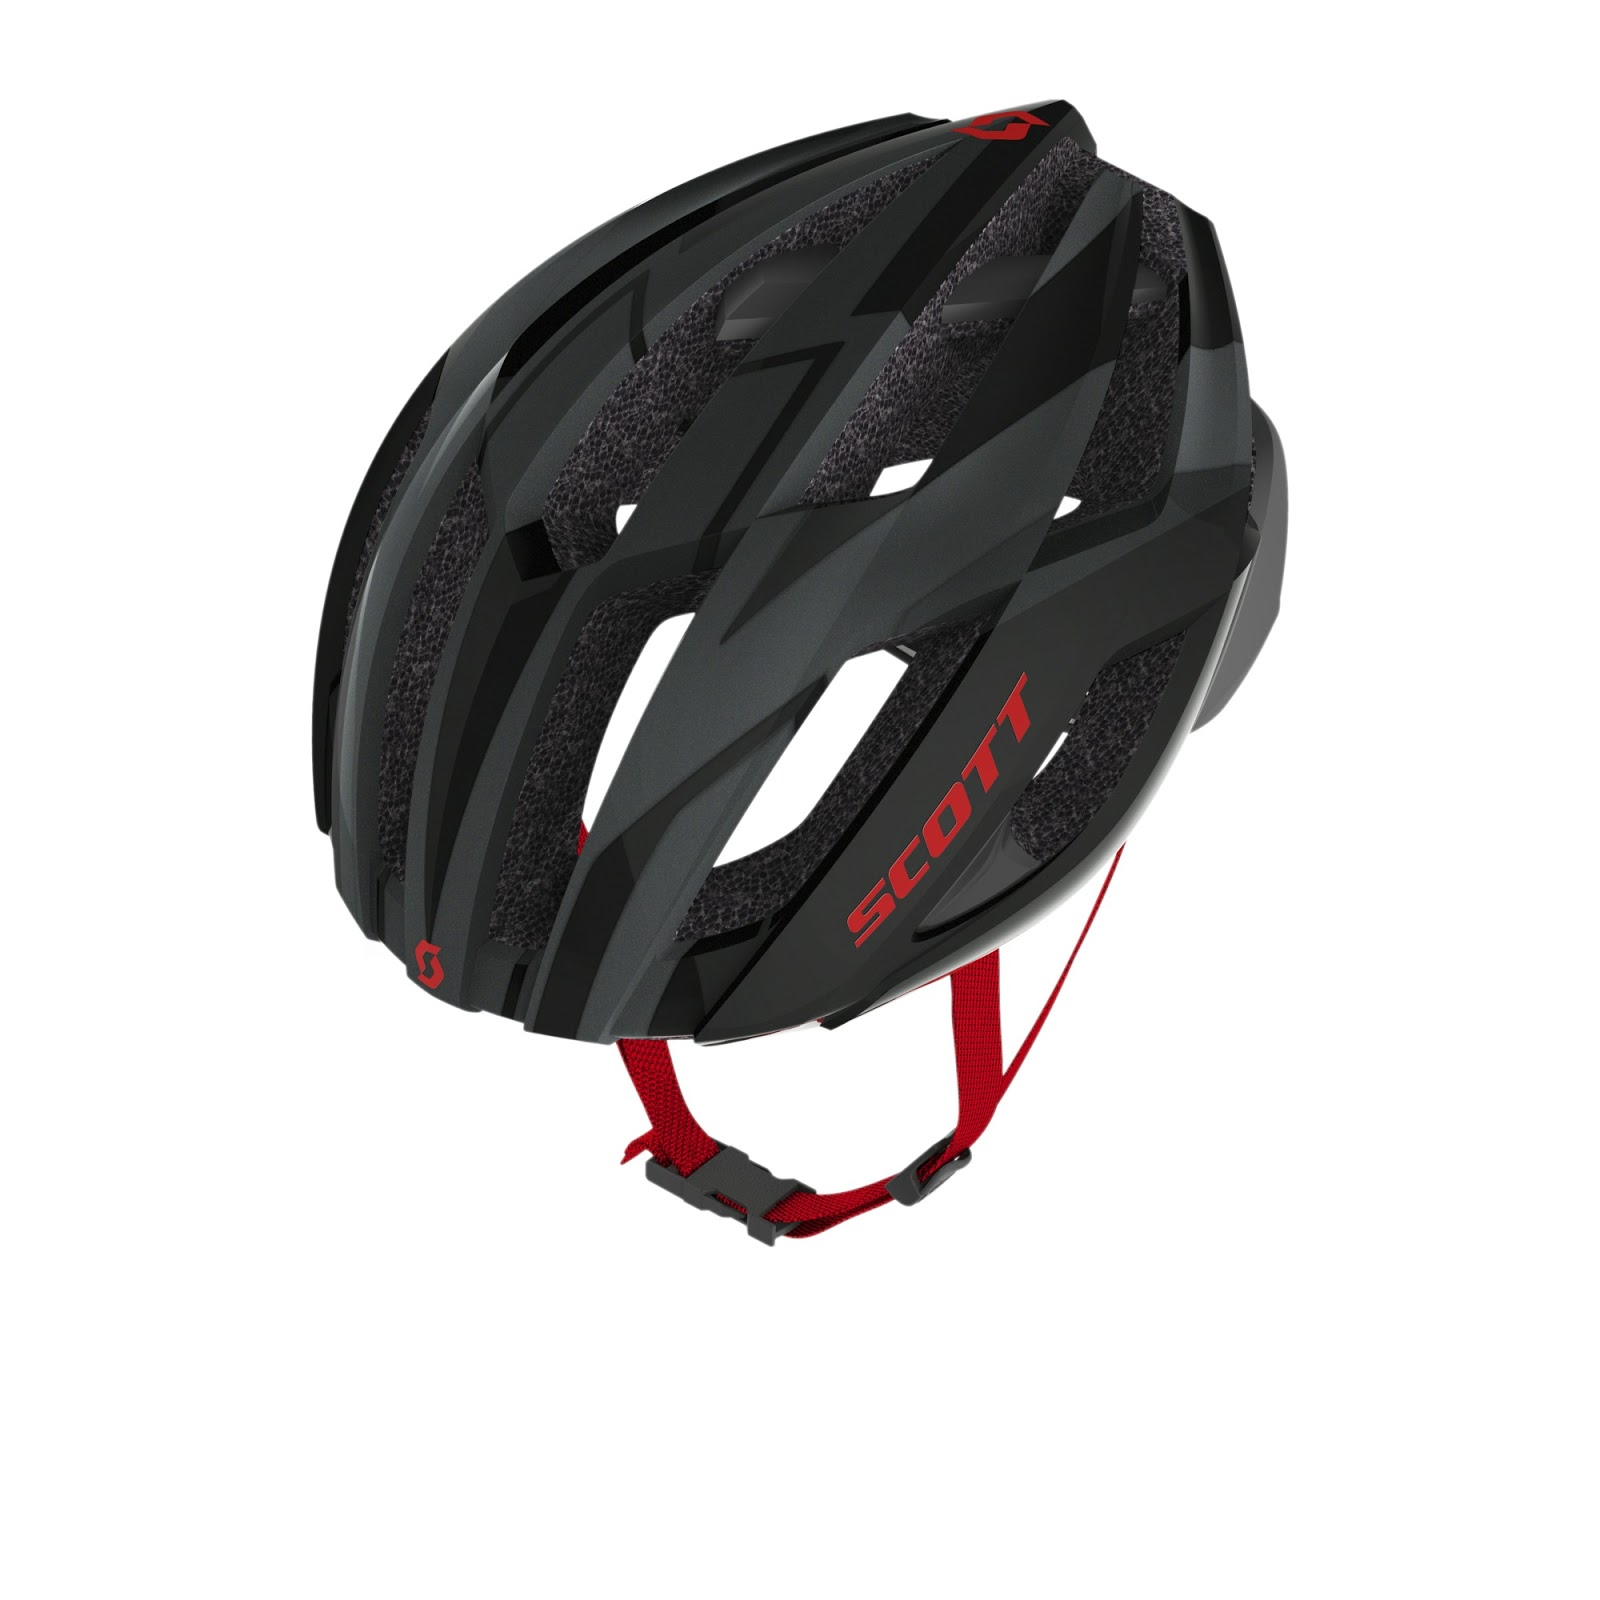 Bike Ratings Consumer Reports the highest rated helmet